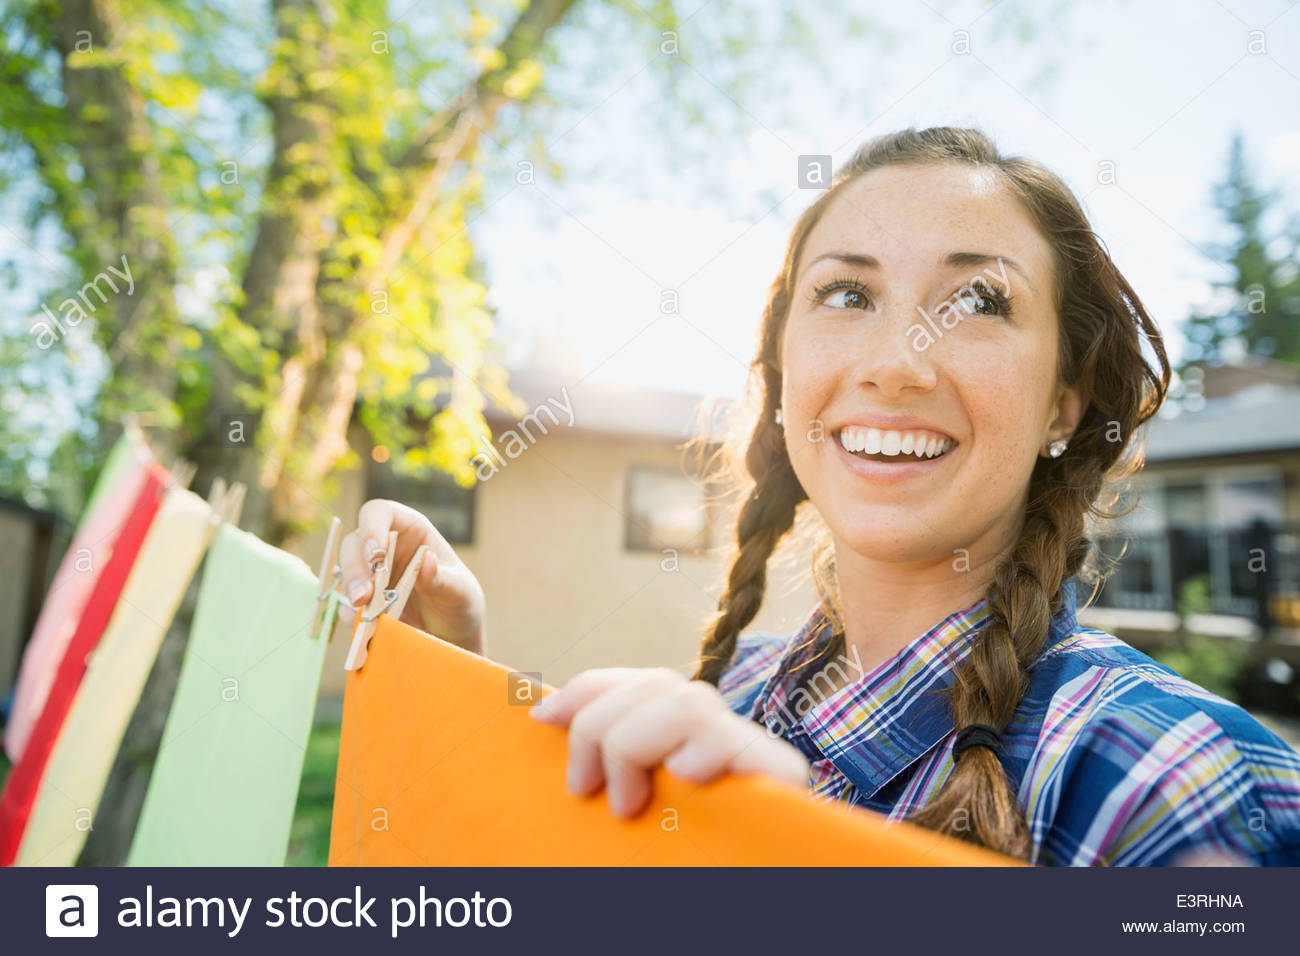 Smiling woman with braids hanging laundry on clothesline - Stock Image